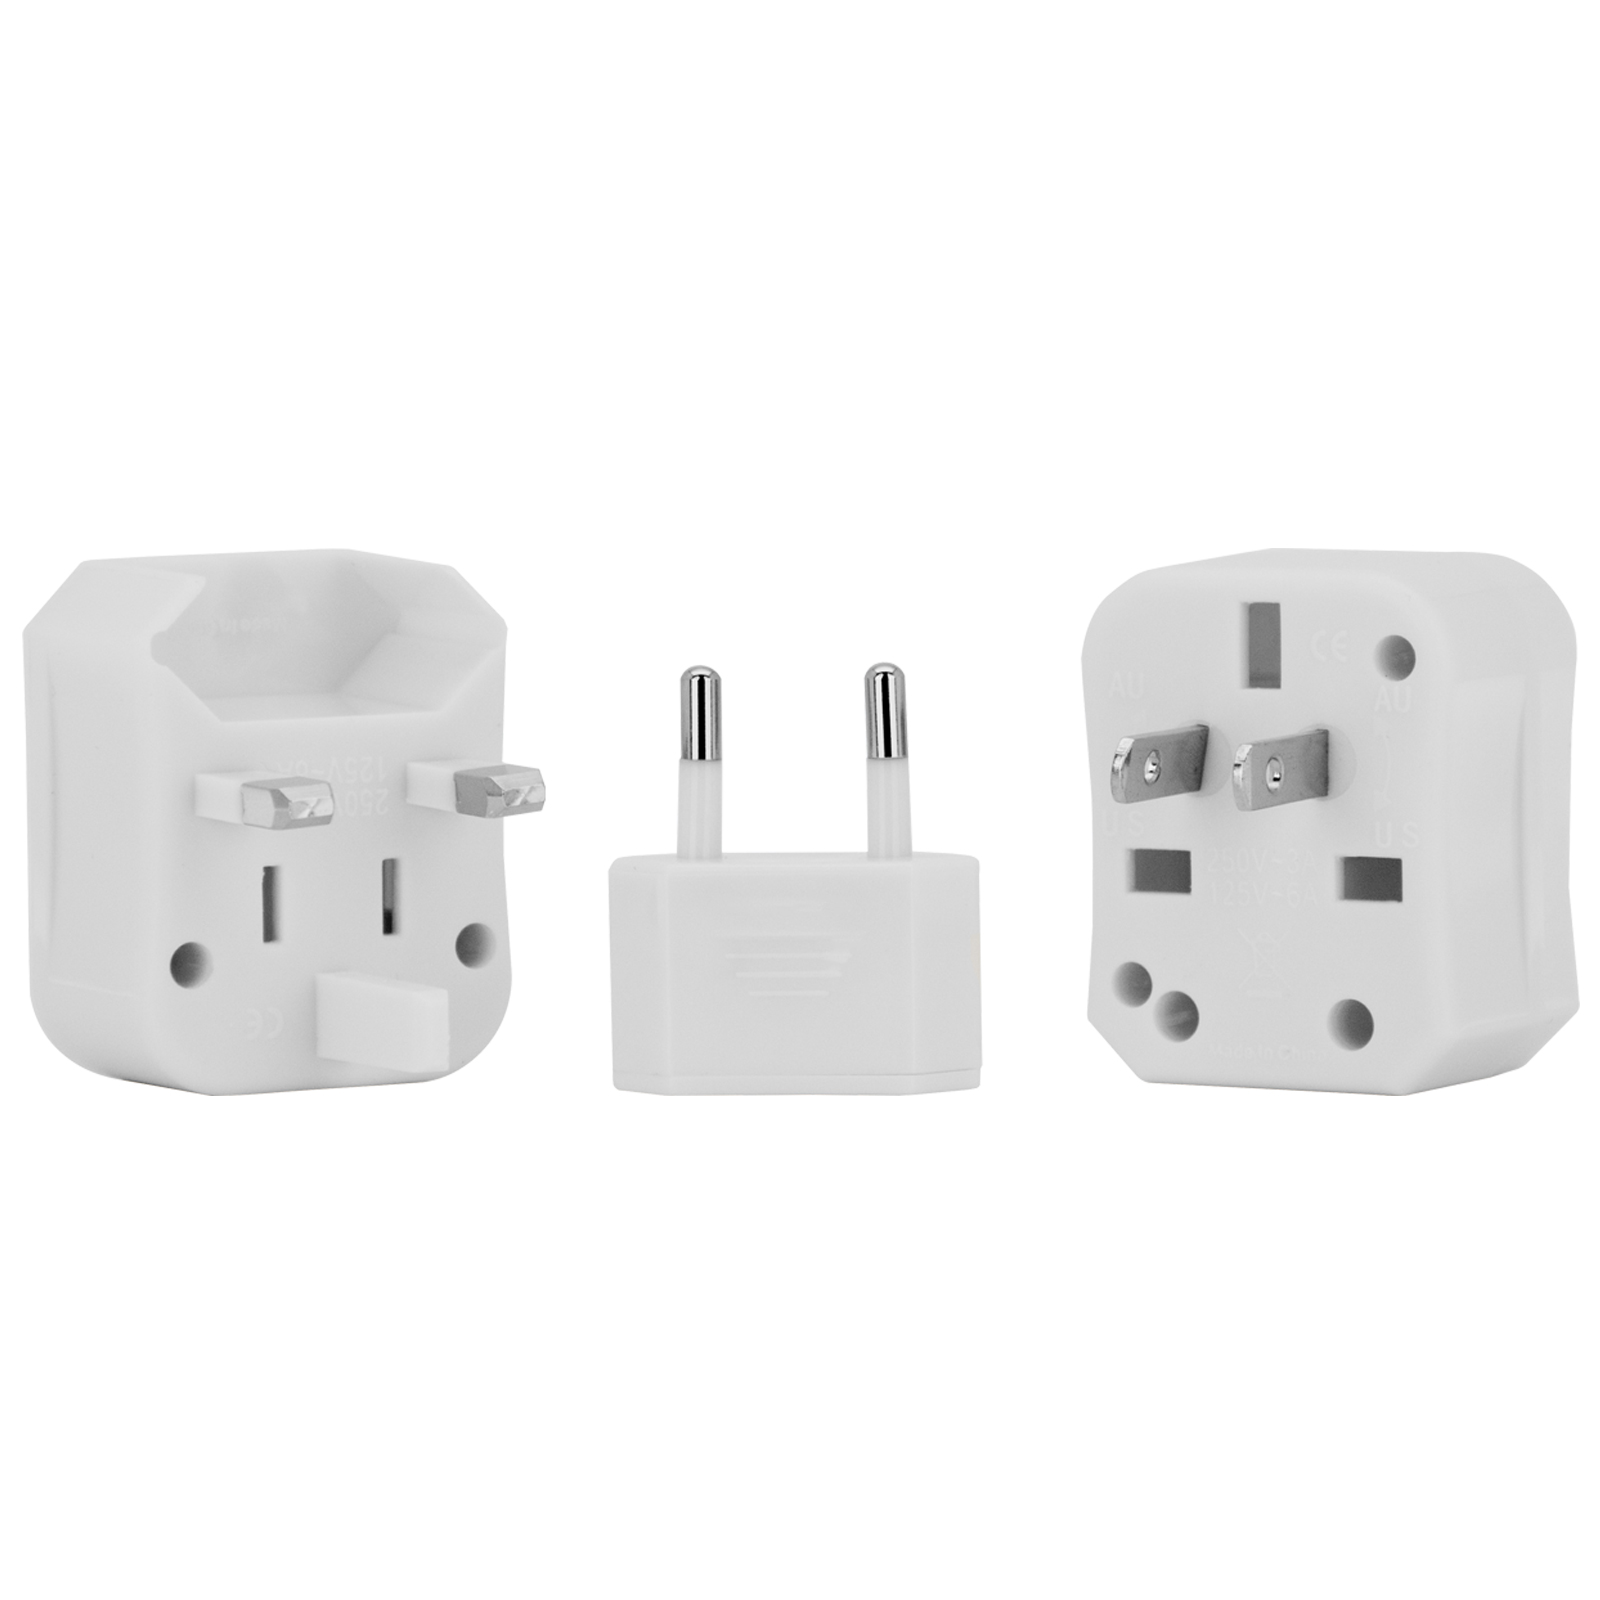 4 PIN TRAVEL ADAPTER